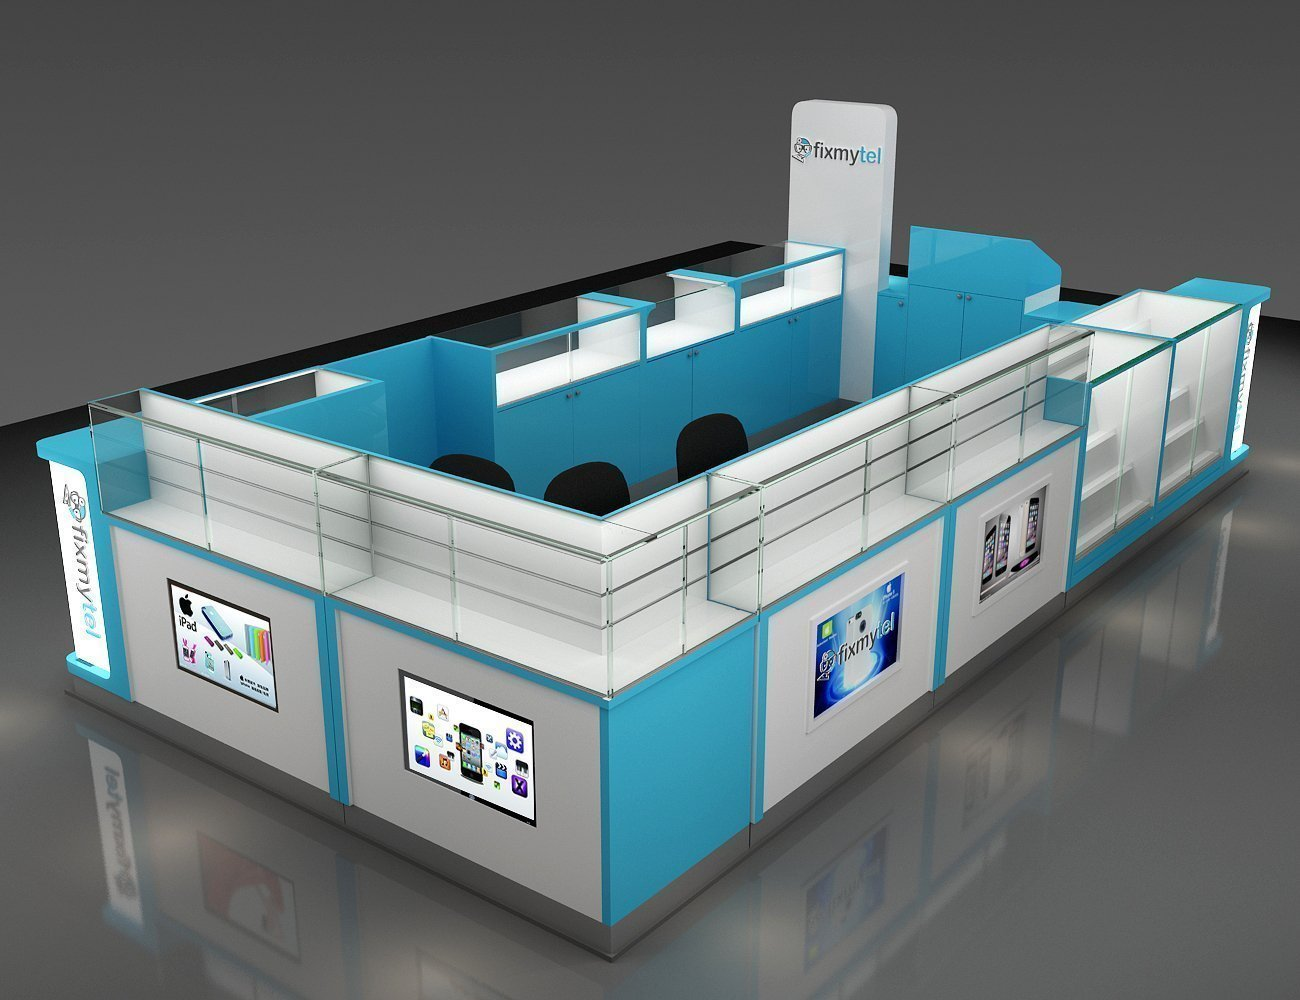 Furniture Design For Mobile Repairing Kiosk Counter Design With Matt Paint View Furniture Design For Mobile Kiosk Yuantai Furniture Product Details From Sz Yuan Tai Whole Furniture Production Co Ltd On Alibaba Com